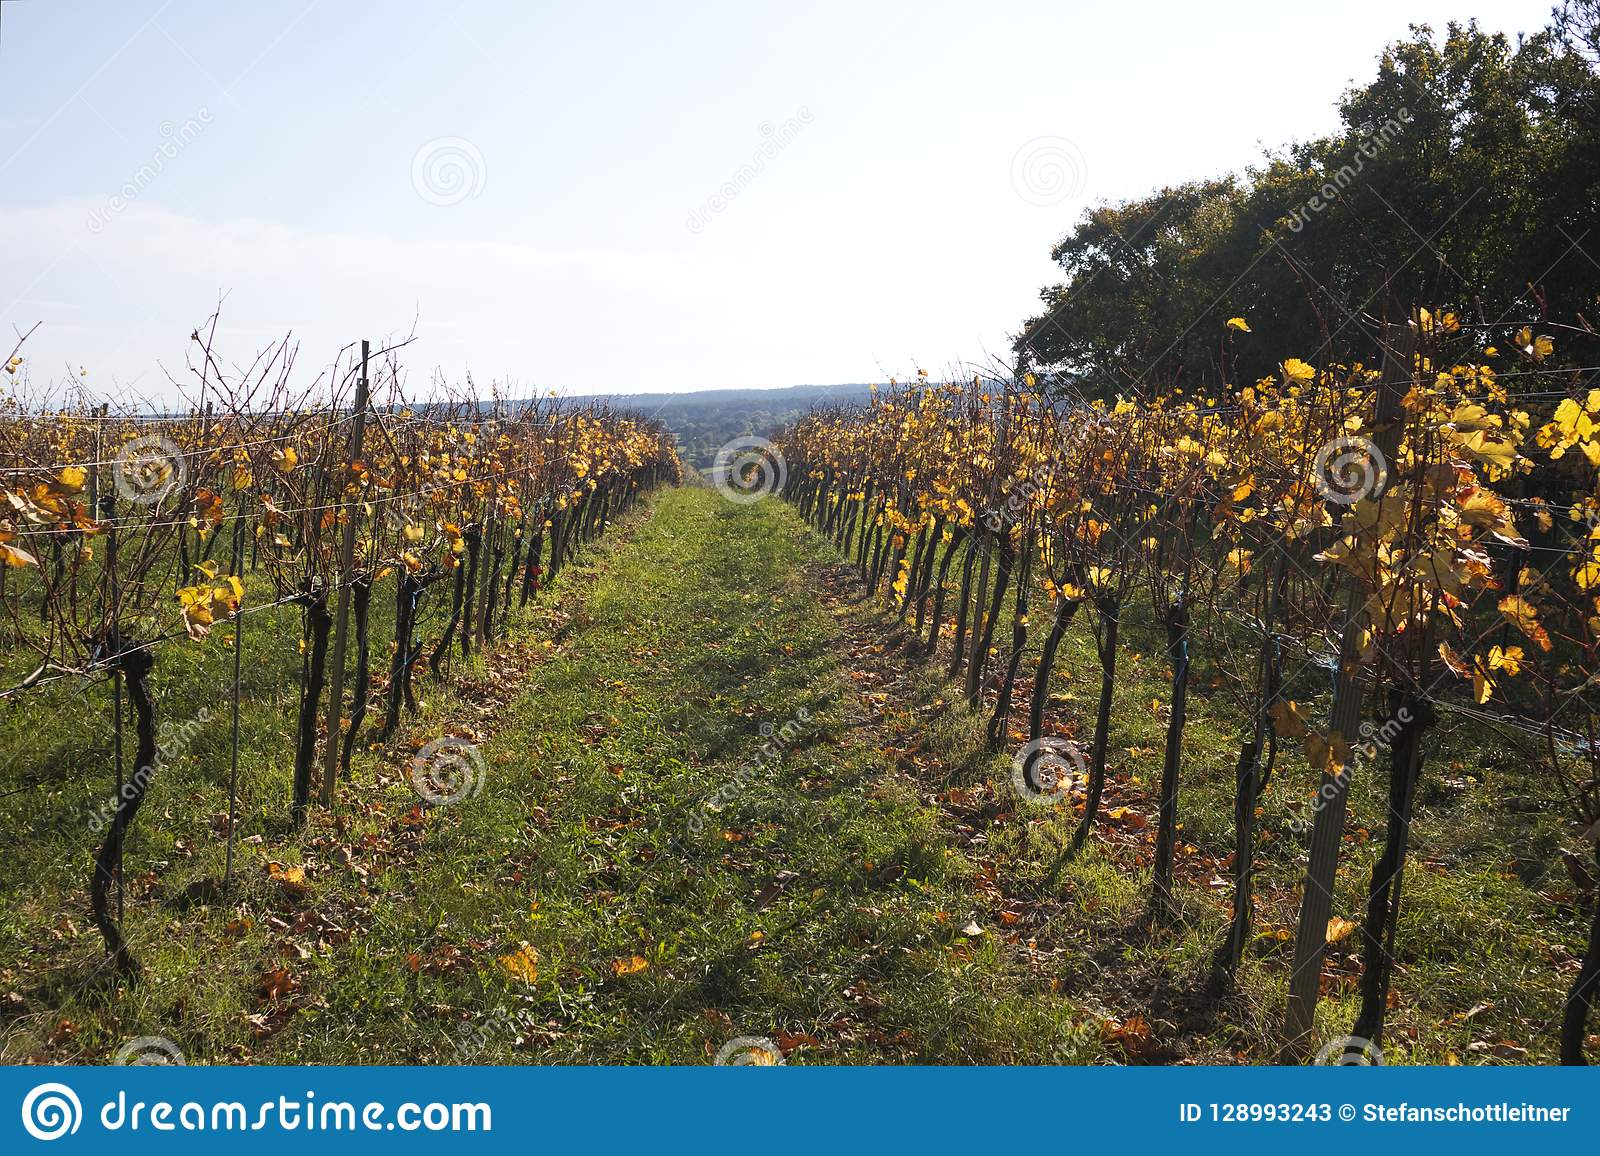 a grapevine on a field in autumn